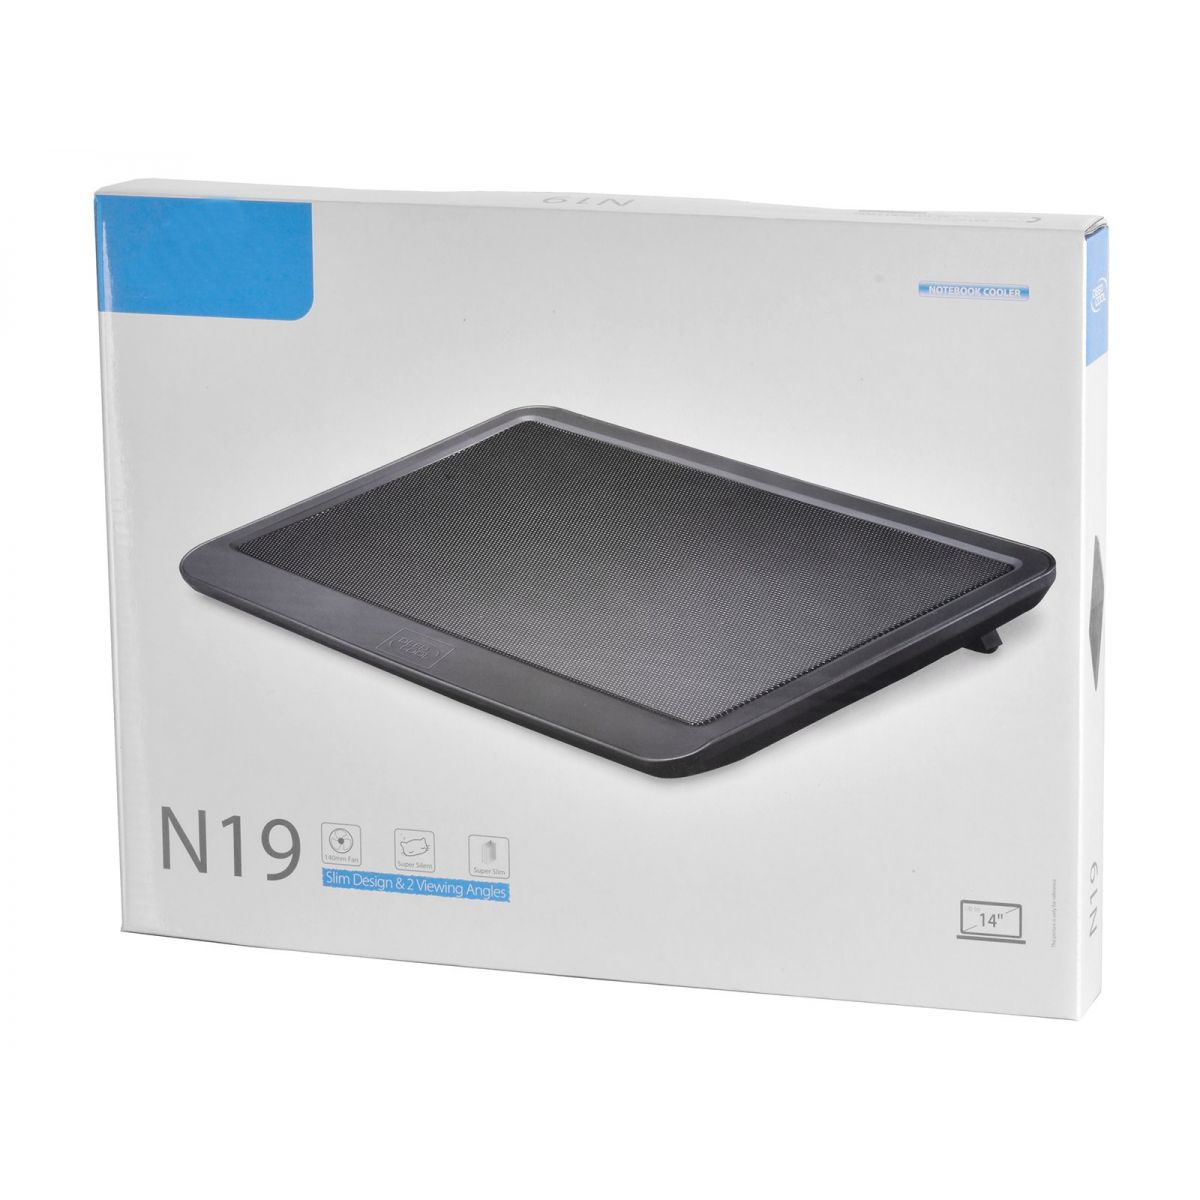 Kit Base Cooler Notebook N19 + Mouse Wireless Preto G370